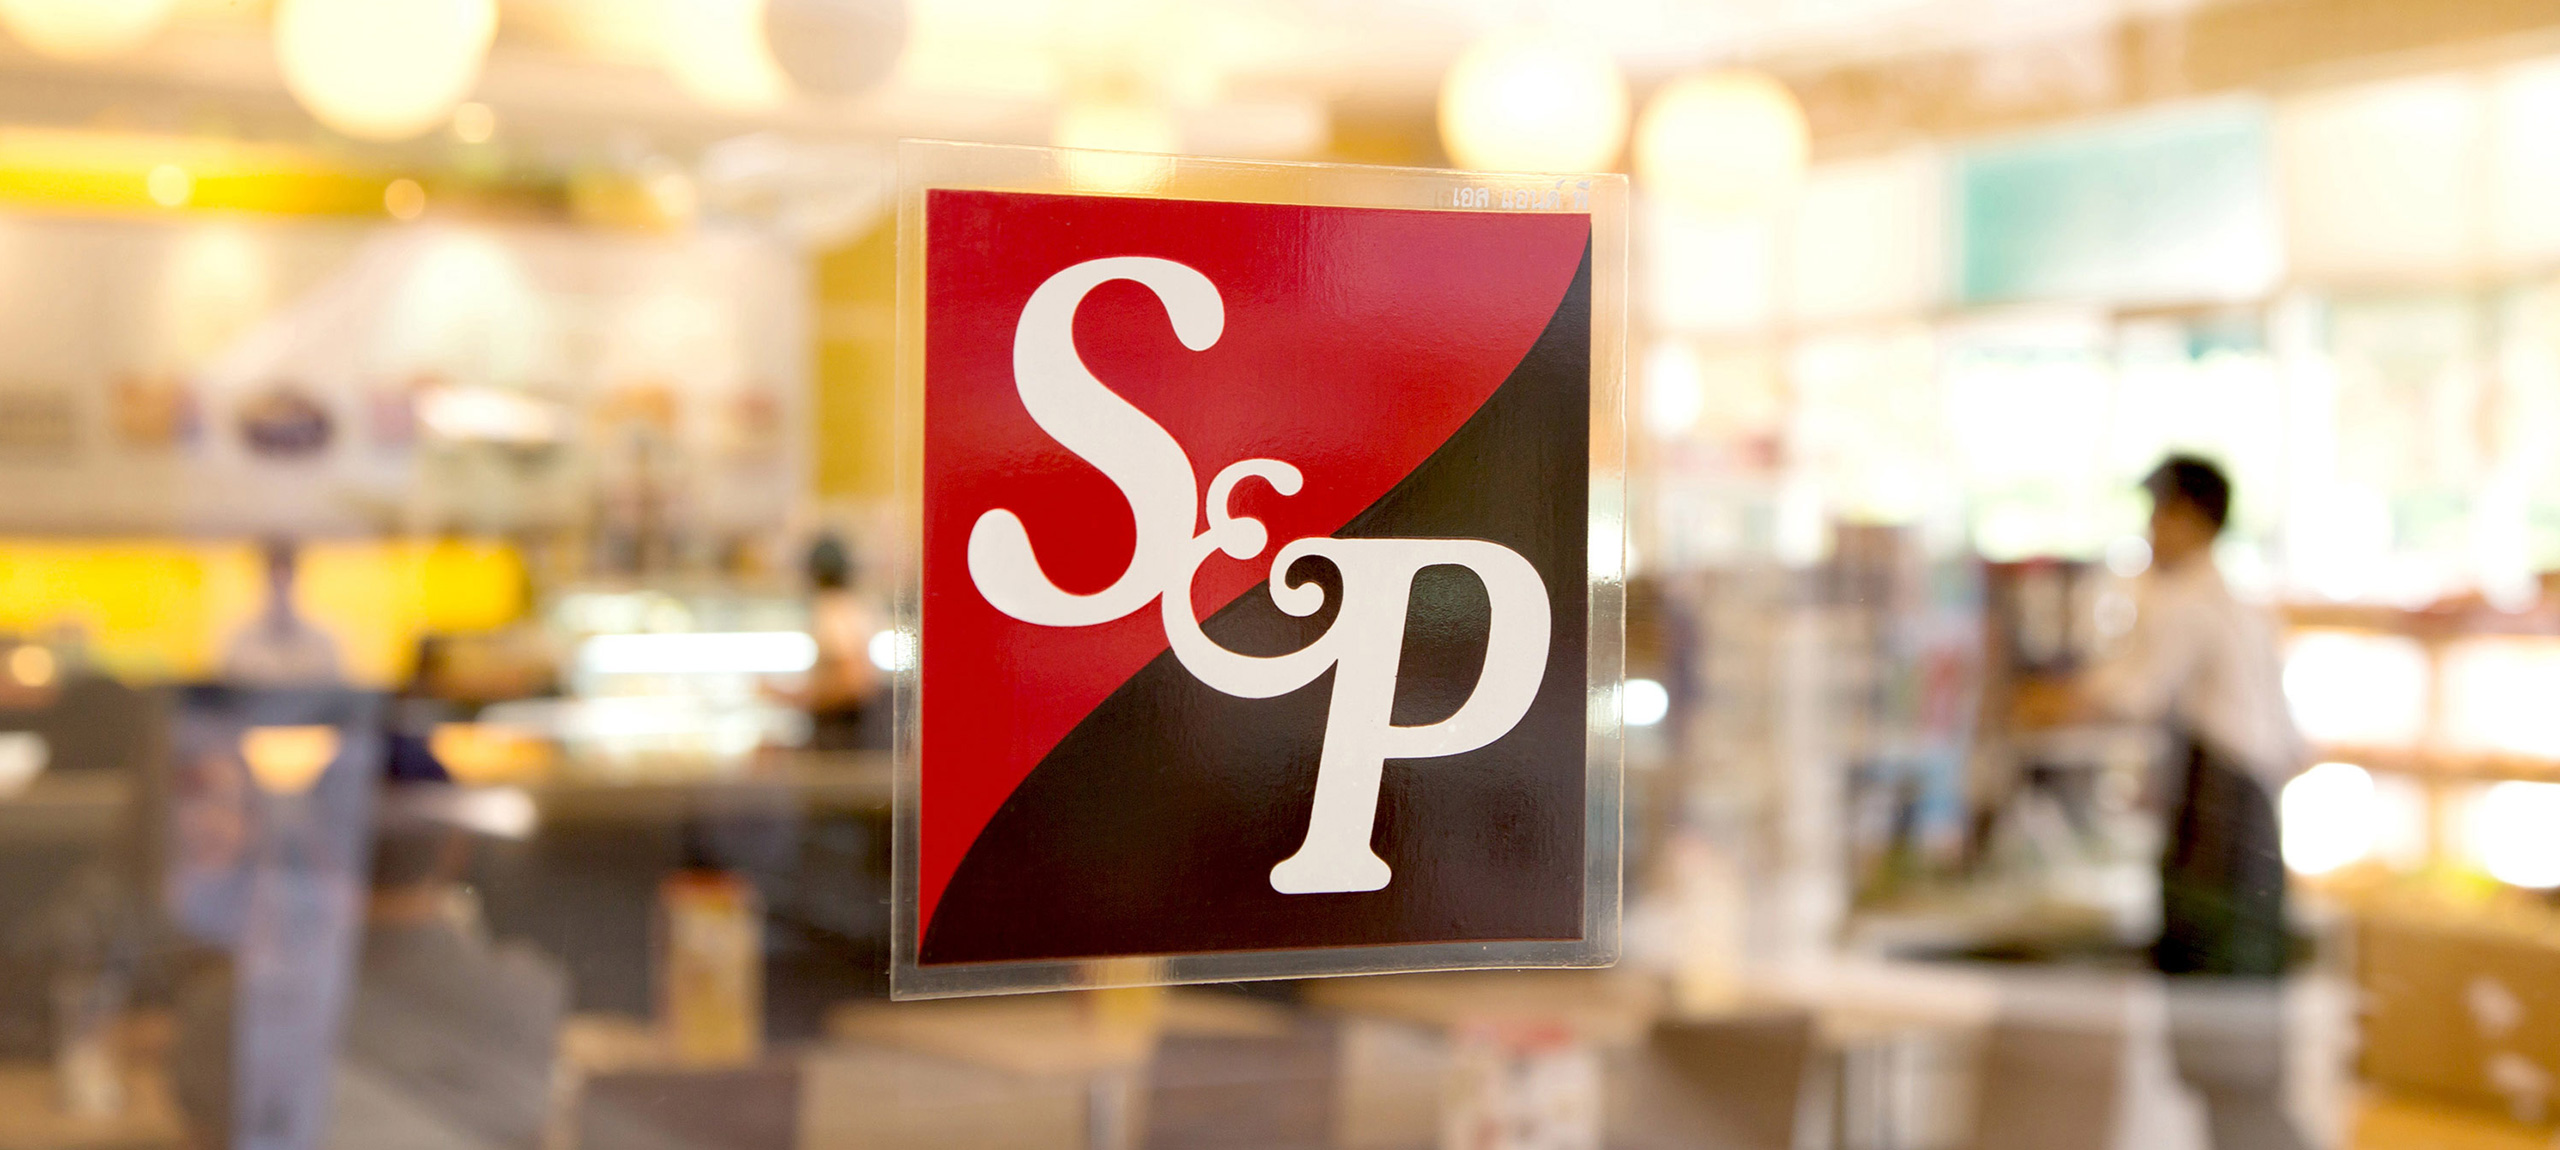 s and p signage banner